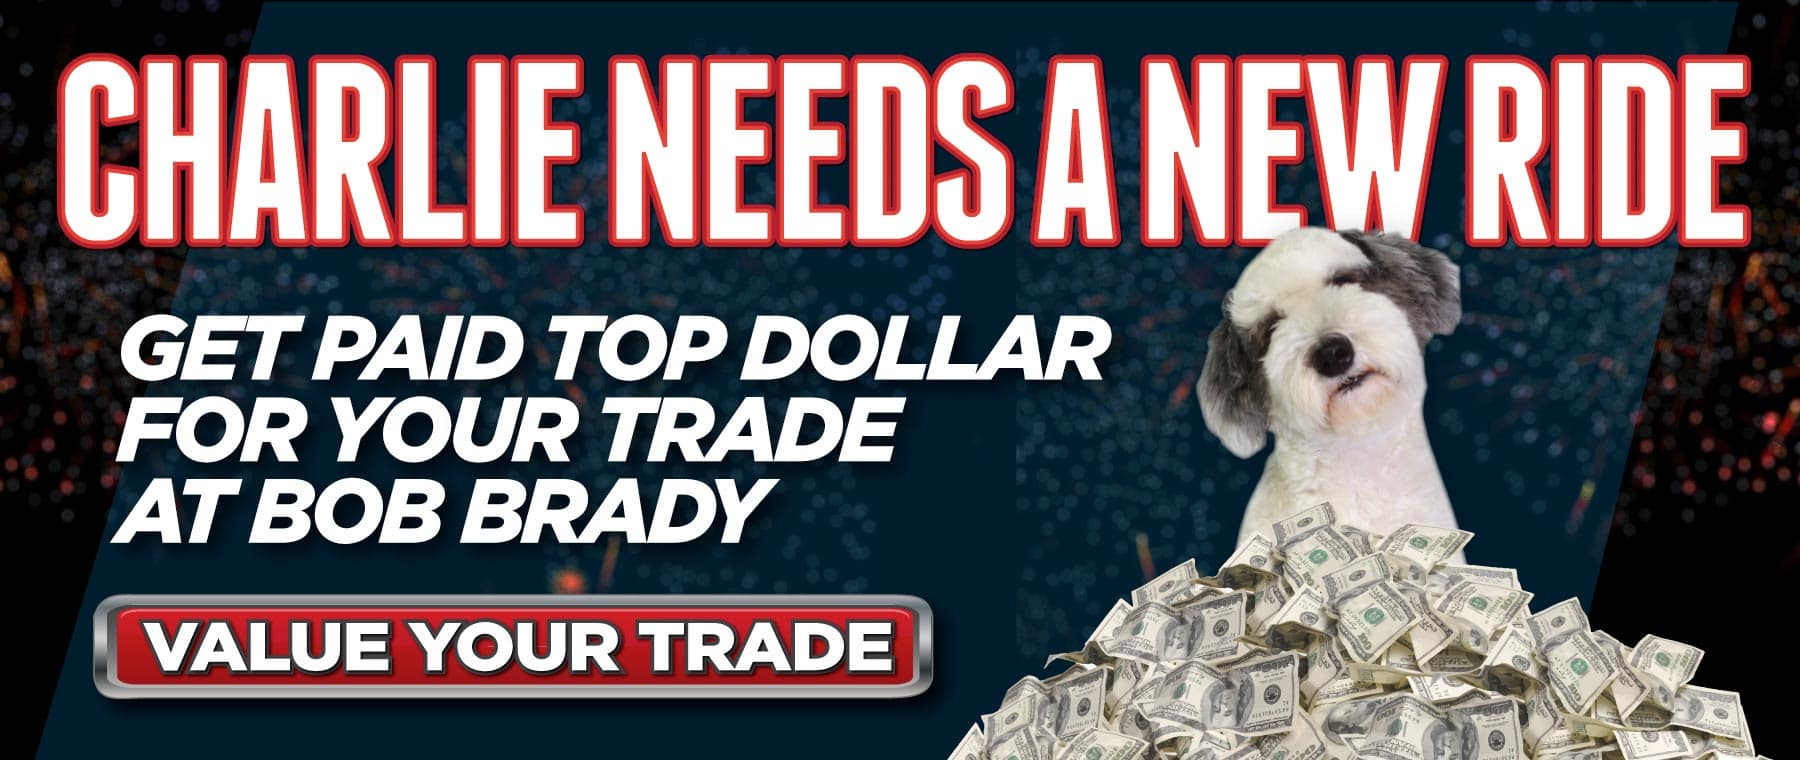 Get paid top dollar for your trade at Bob Brady   Value Your Trade